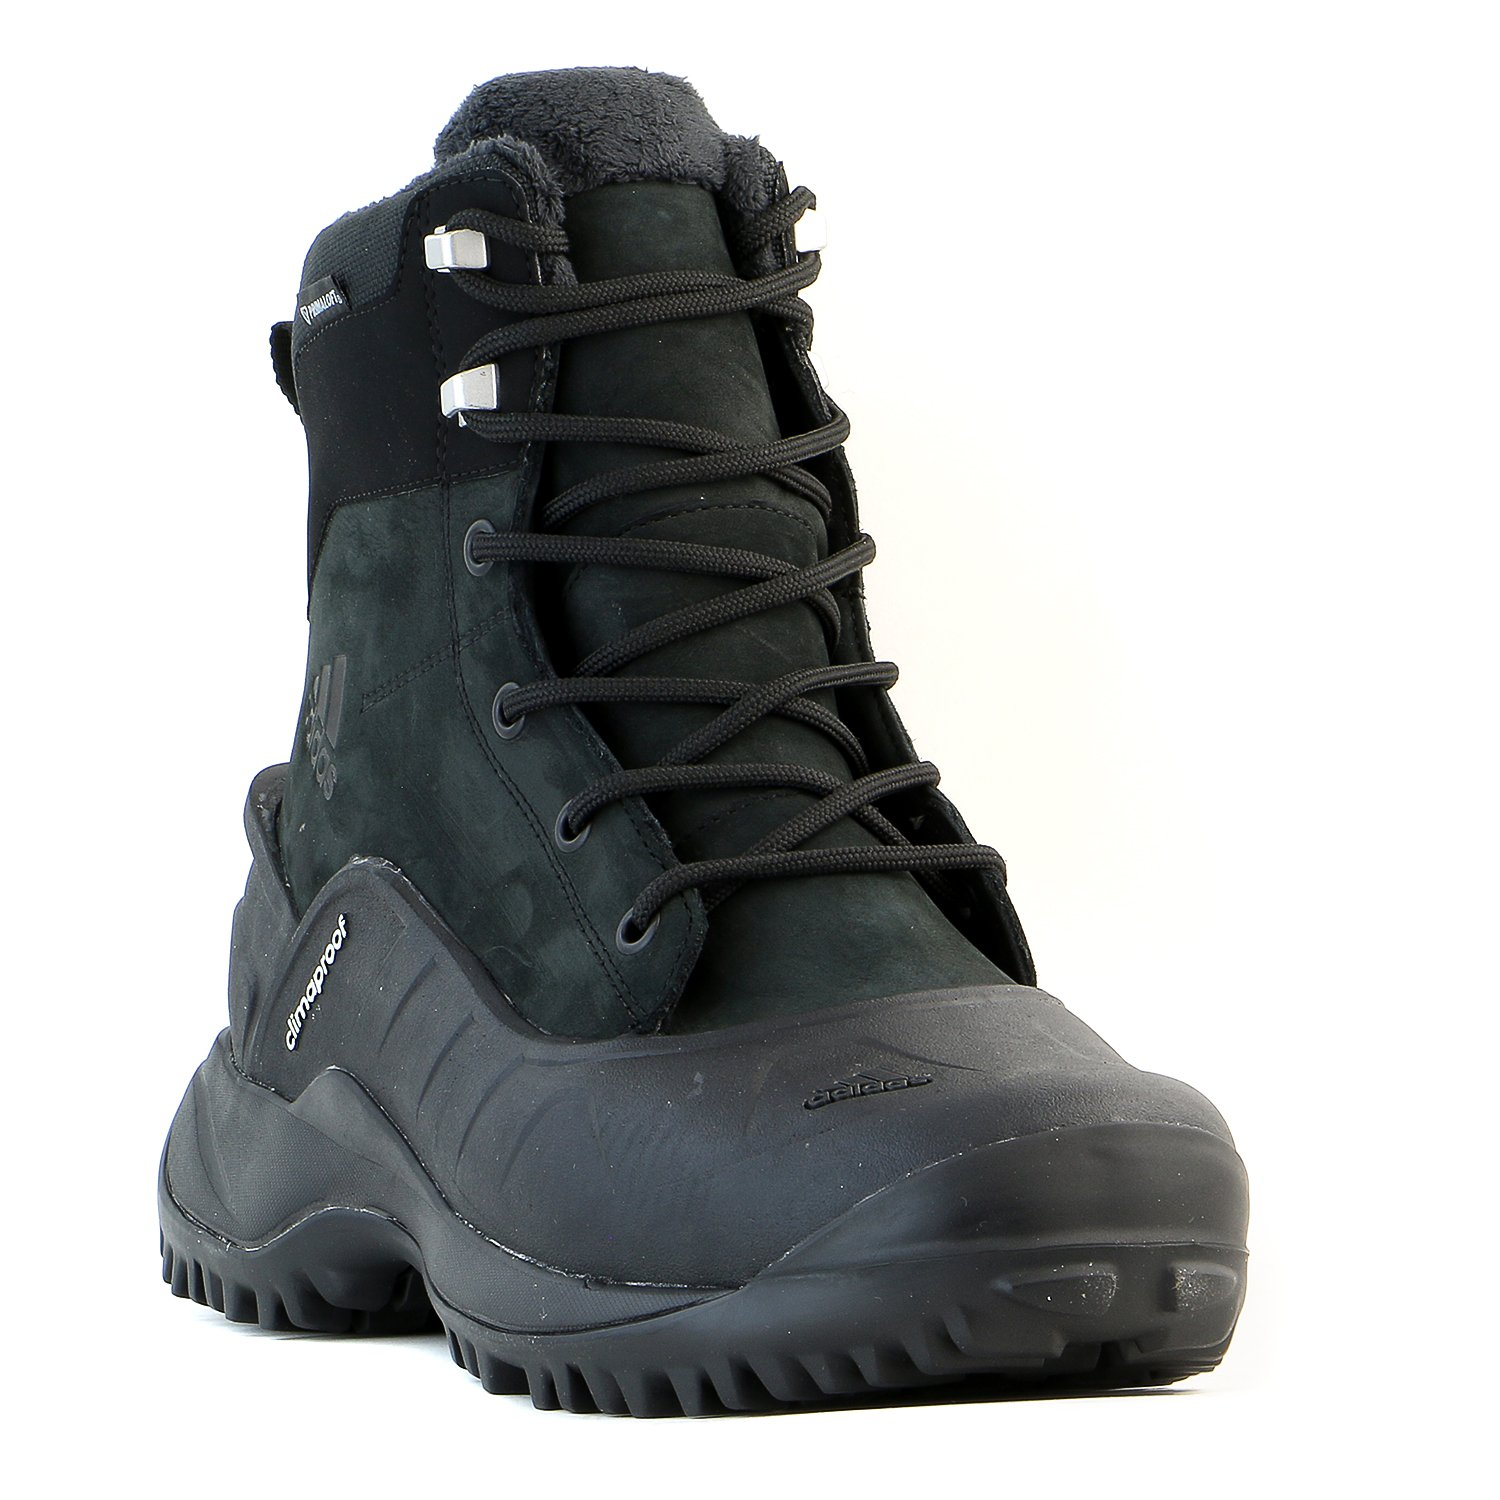 best sneakers 3c4a6 7b560 adidas Holtanna II CP Primaloft Boots - Craft Canvas Black Chalk 7 Black  Size  (M) US  Amazon.co.uk  Shoes   Bags